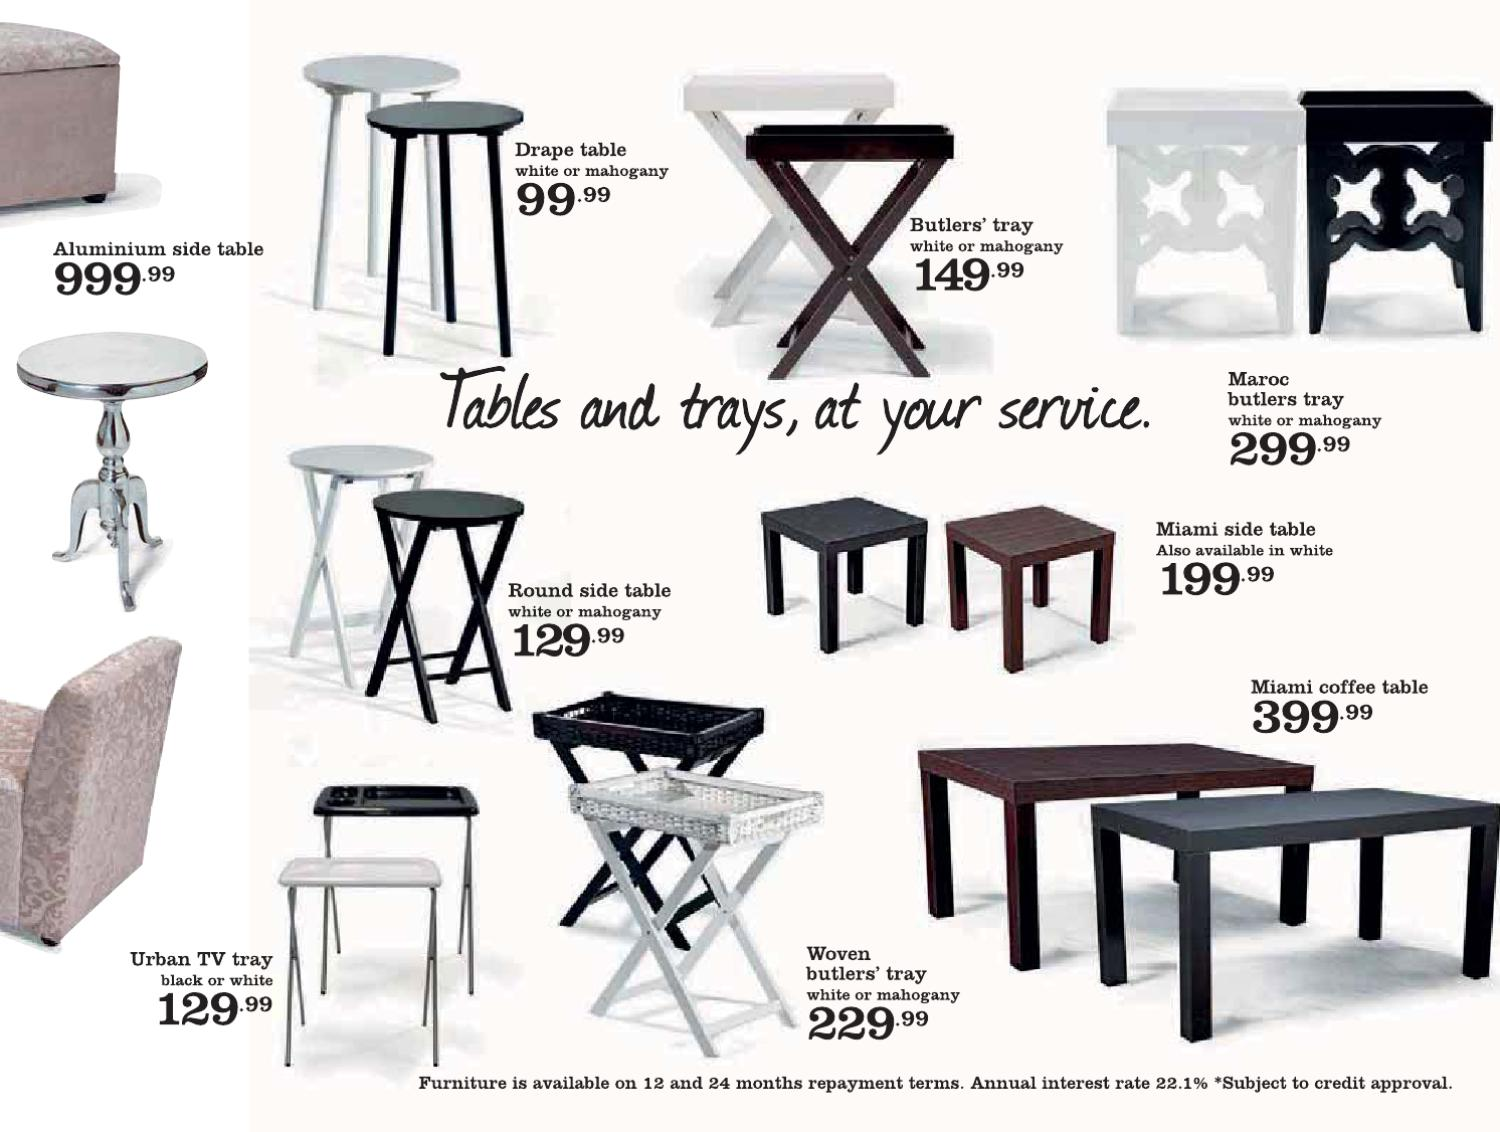 Mr price home furniture catalogue 2011 by mrpg issuu Mr price home furniture catalogue 2011